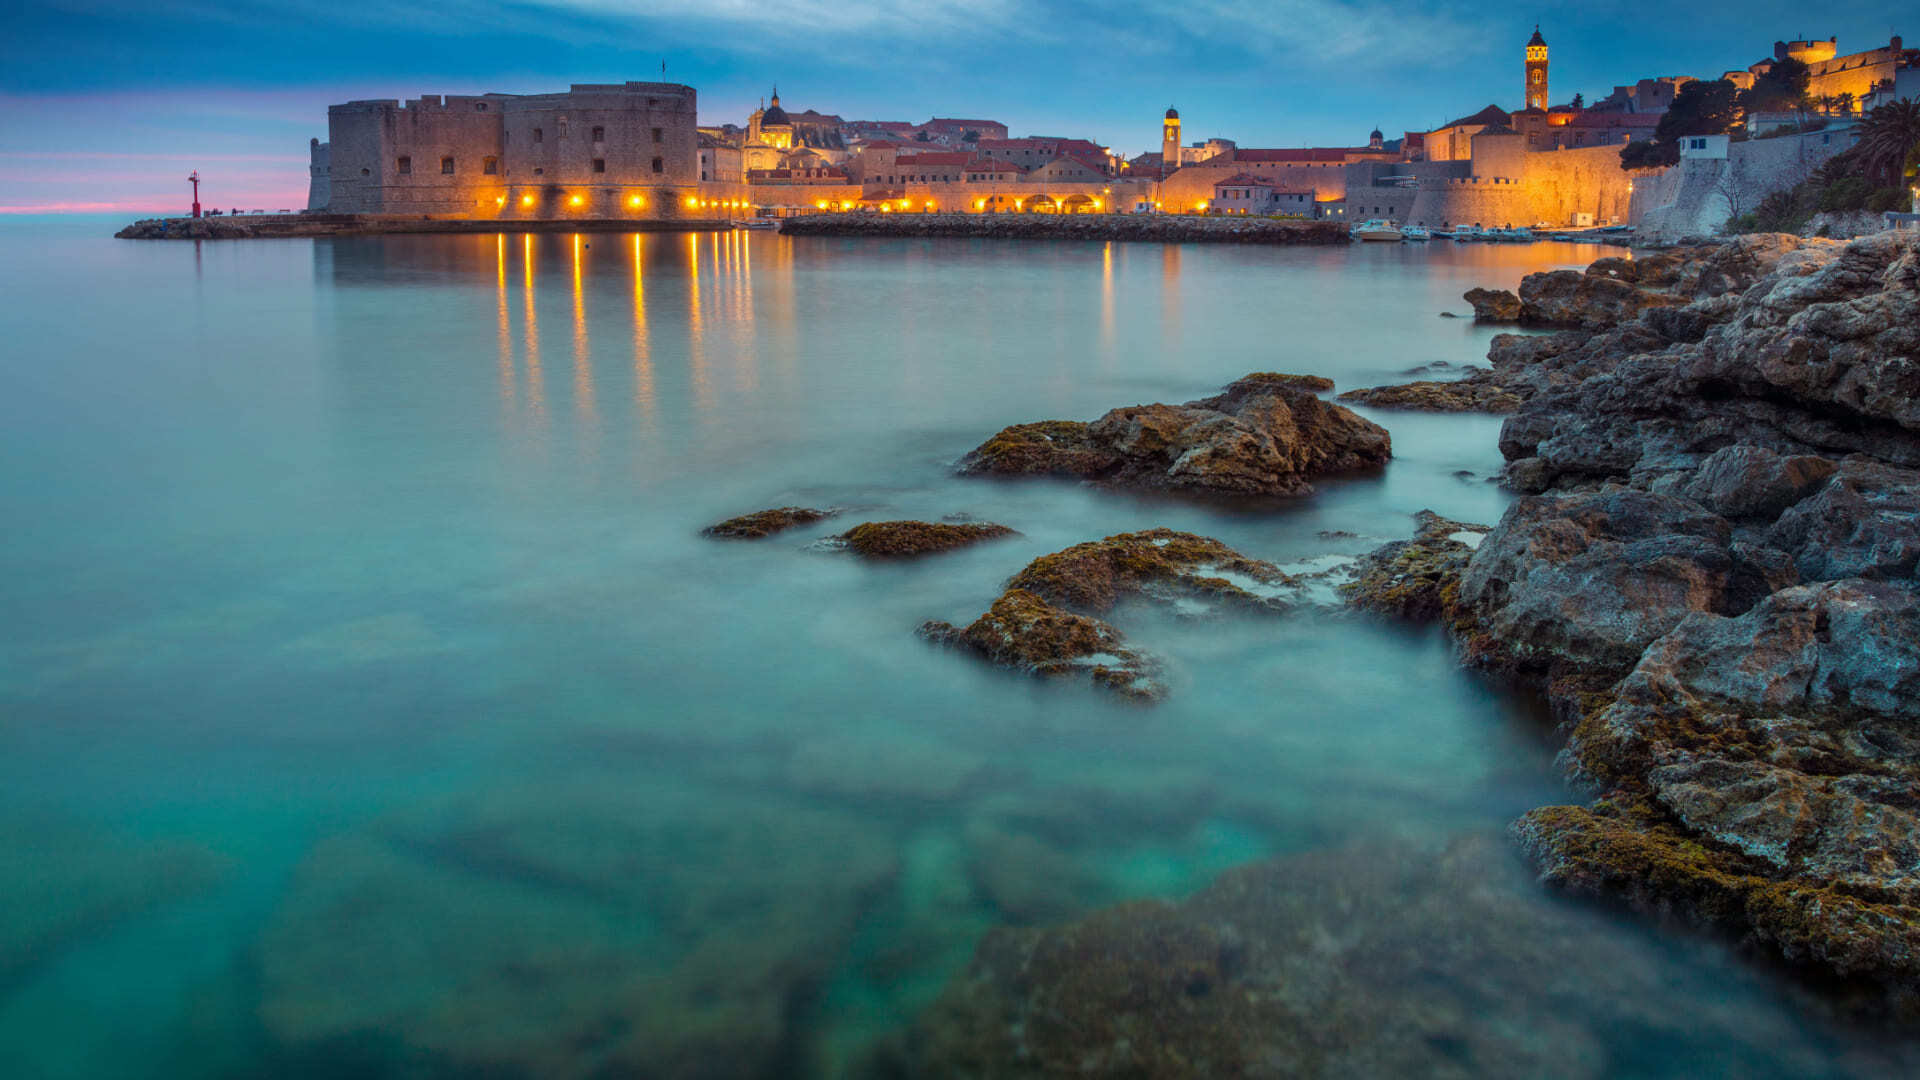 Whenever you decide to visit Dubrovnik, whether is your first time or the tenth time, the feeling of awe does not subside.